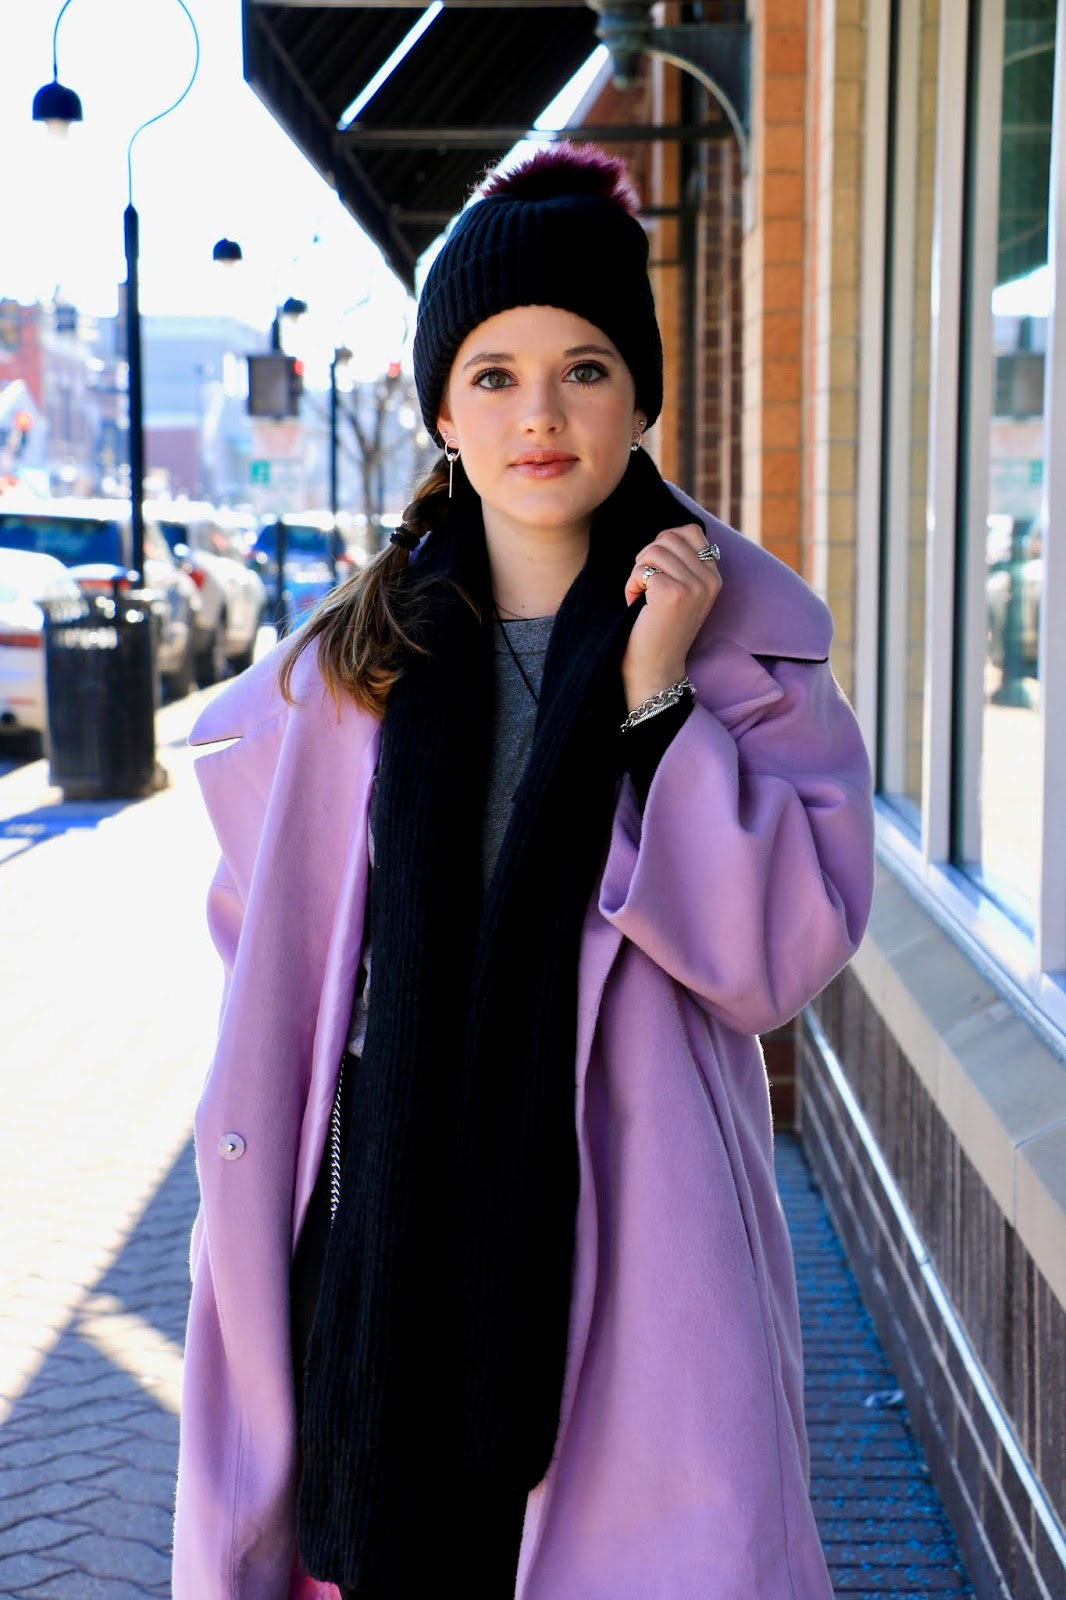 Nyc fashion blogger Kathleen Harper's light purple coat